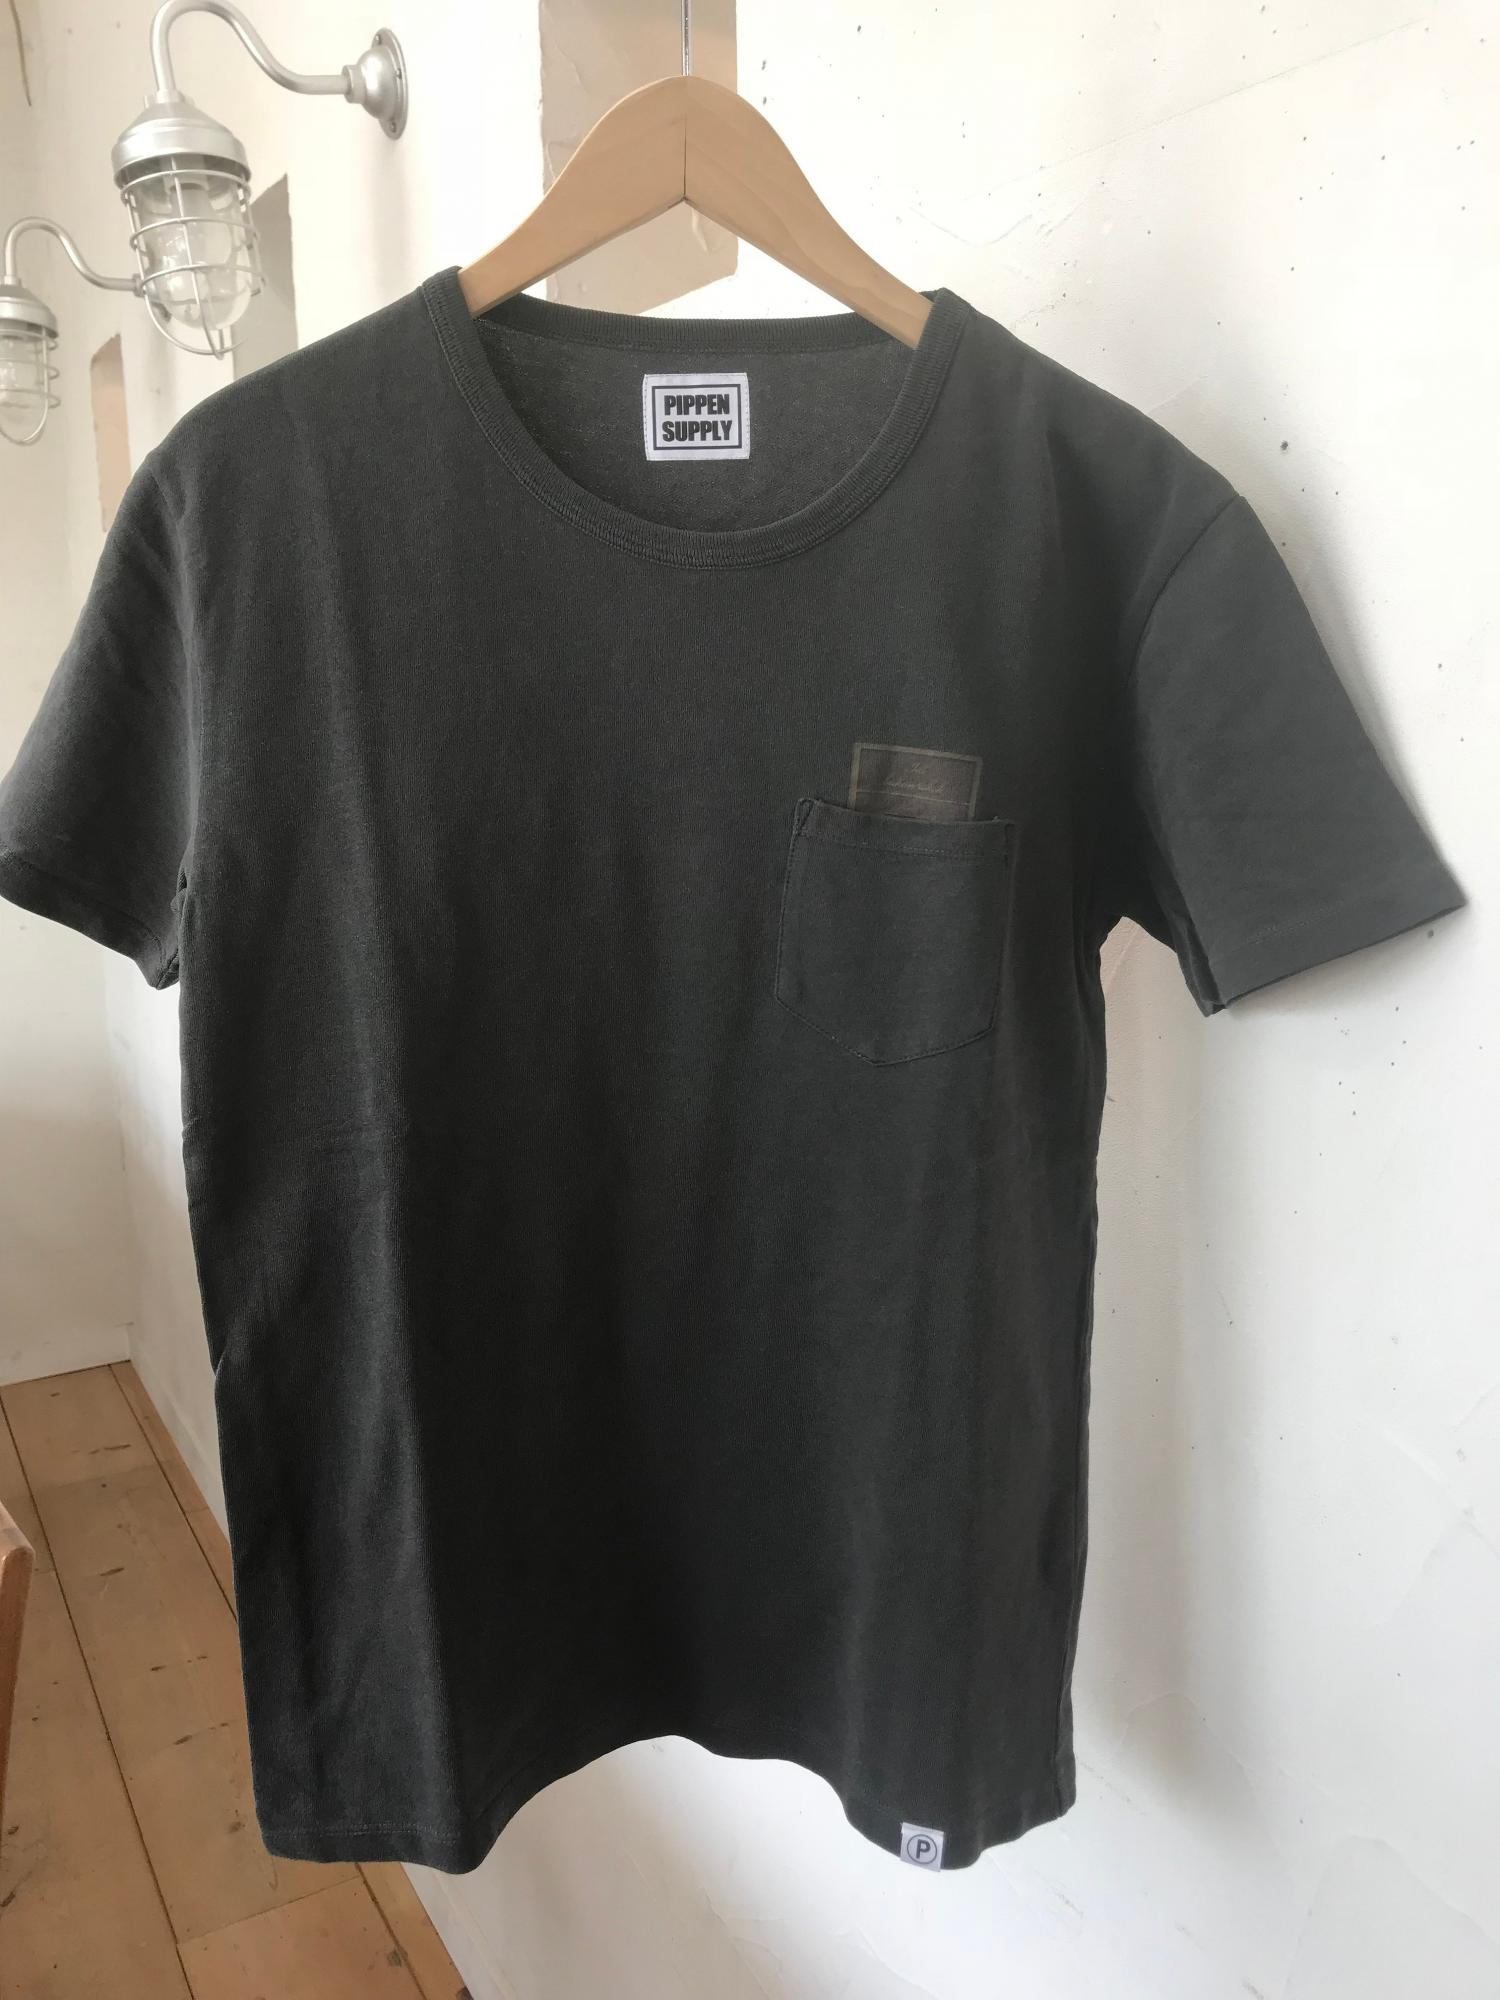 P SUPPLY. LILIN TEE Charcoal